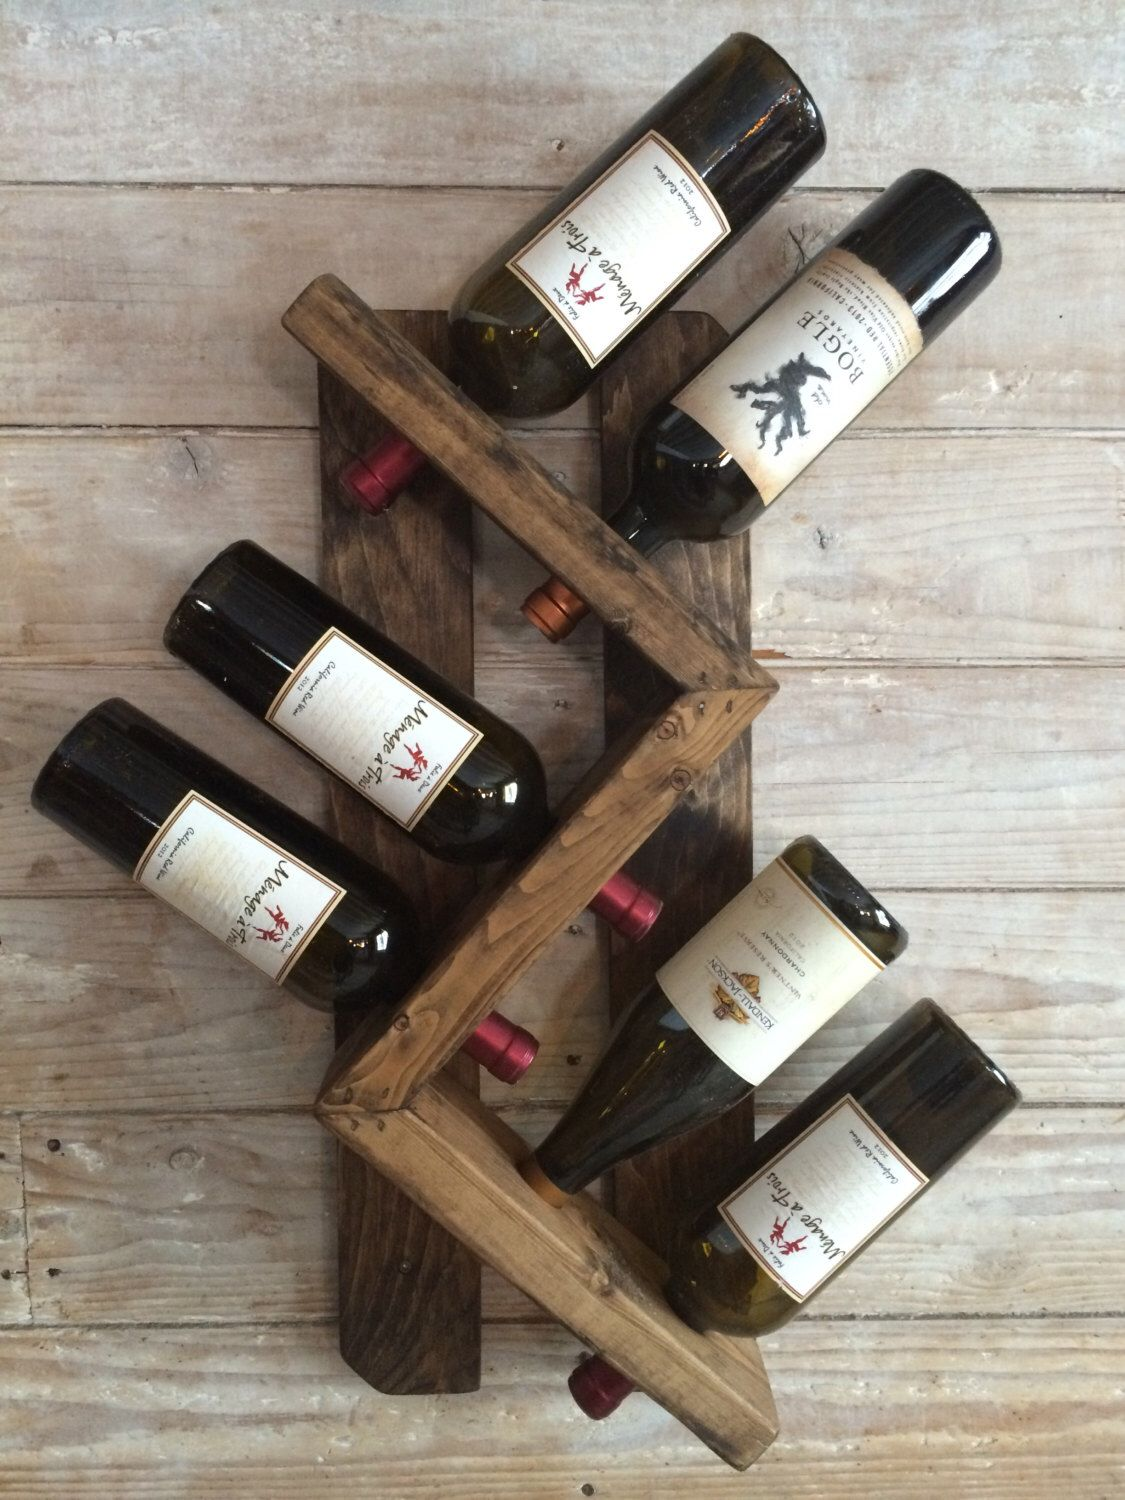 Wine rack-wall mounted wine rack-rustic vintage wine rack by WallisFamilyCustoms on Etsy ... & Wine rack-wall mounted wine rack-rustic vintage wine rack by ...